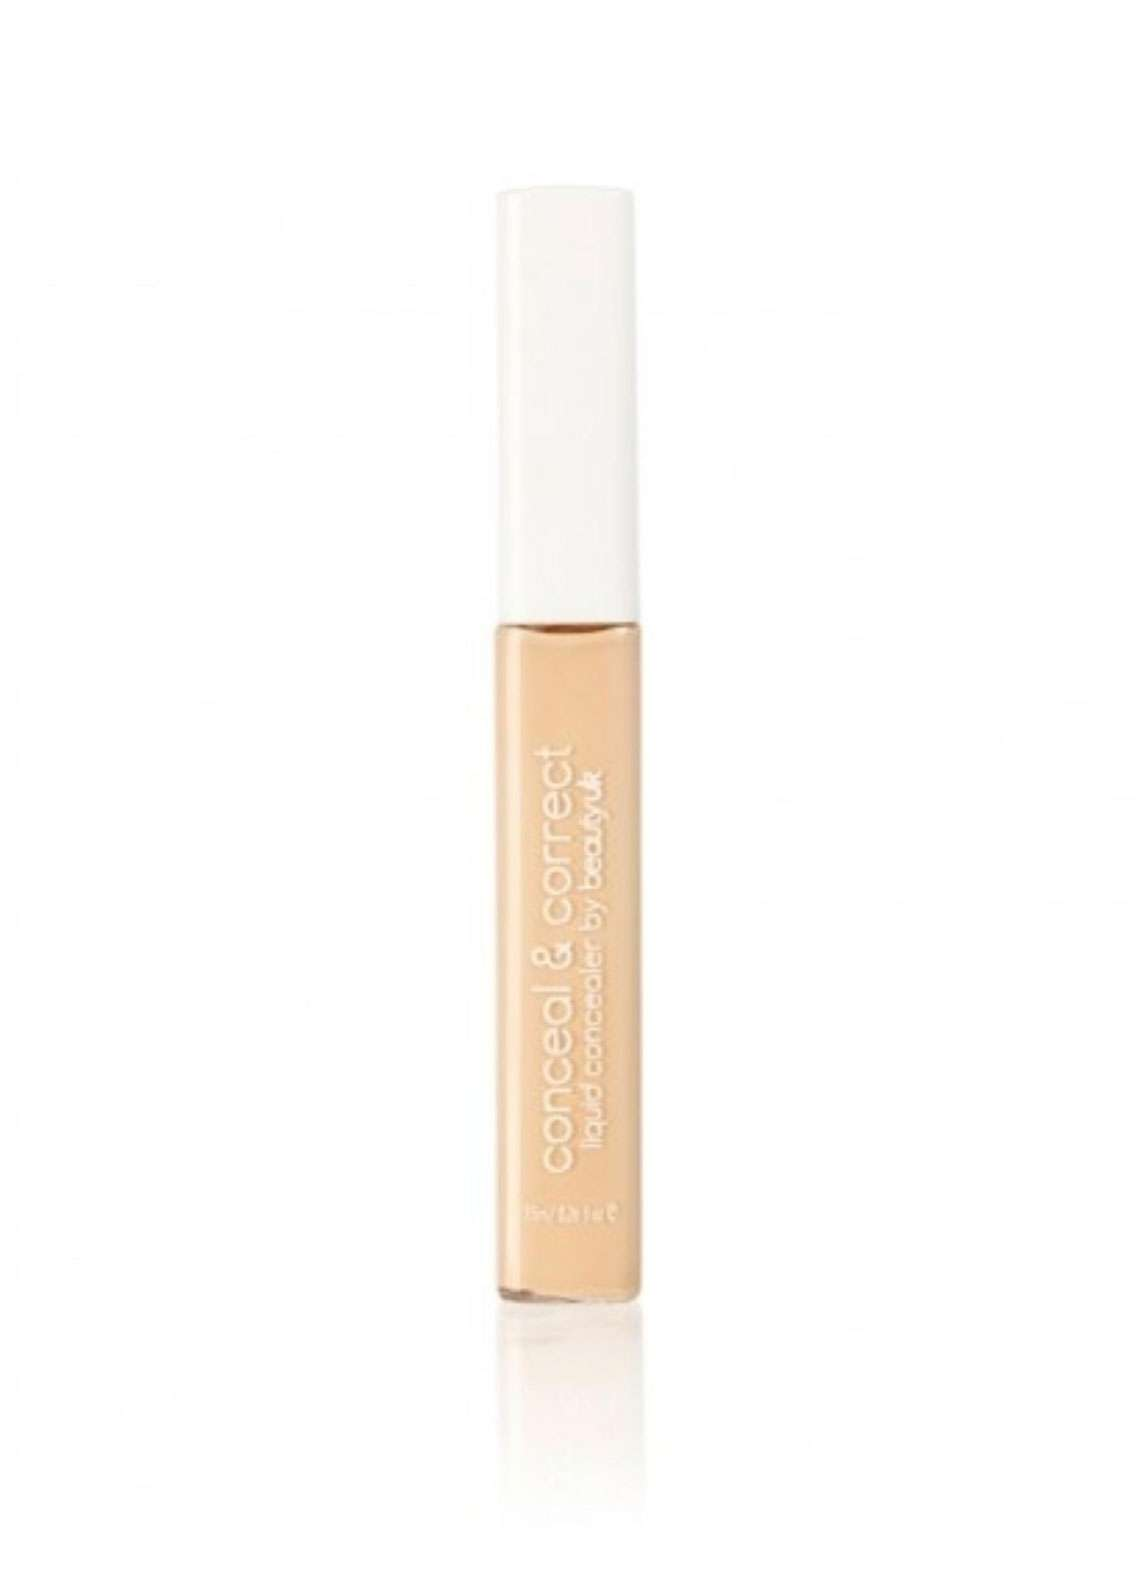 Beauty UK Conceal And Correct Liquid Concealer No. 1